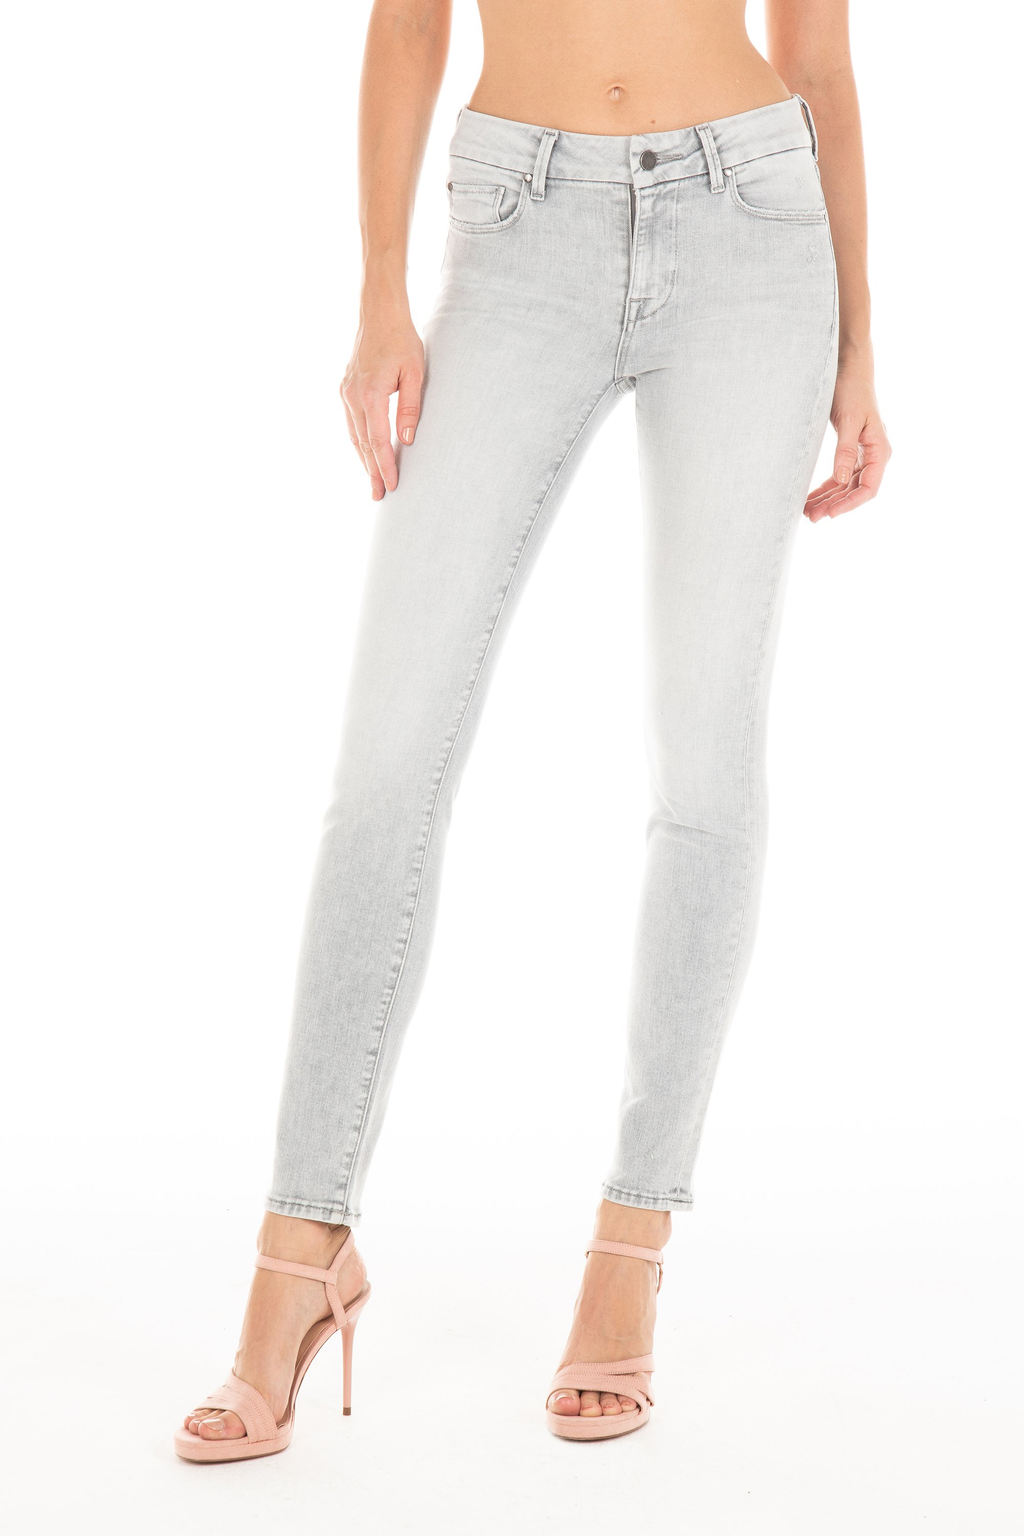 FIDELITY Vintage Frost Mid Rise Skinny Jeans skinny taille mi-haute